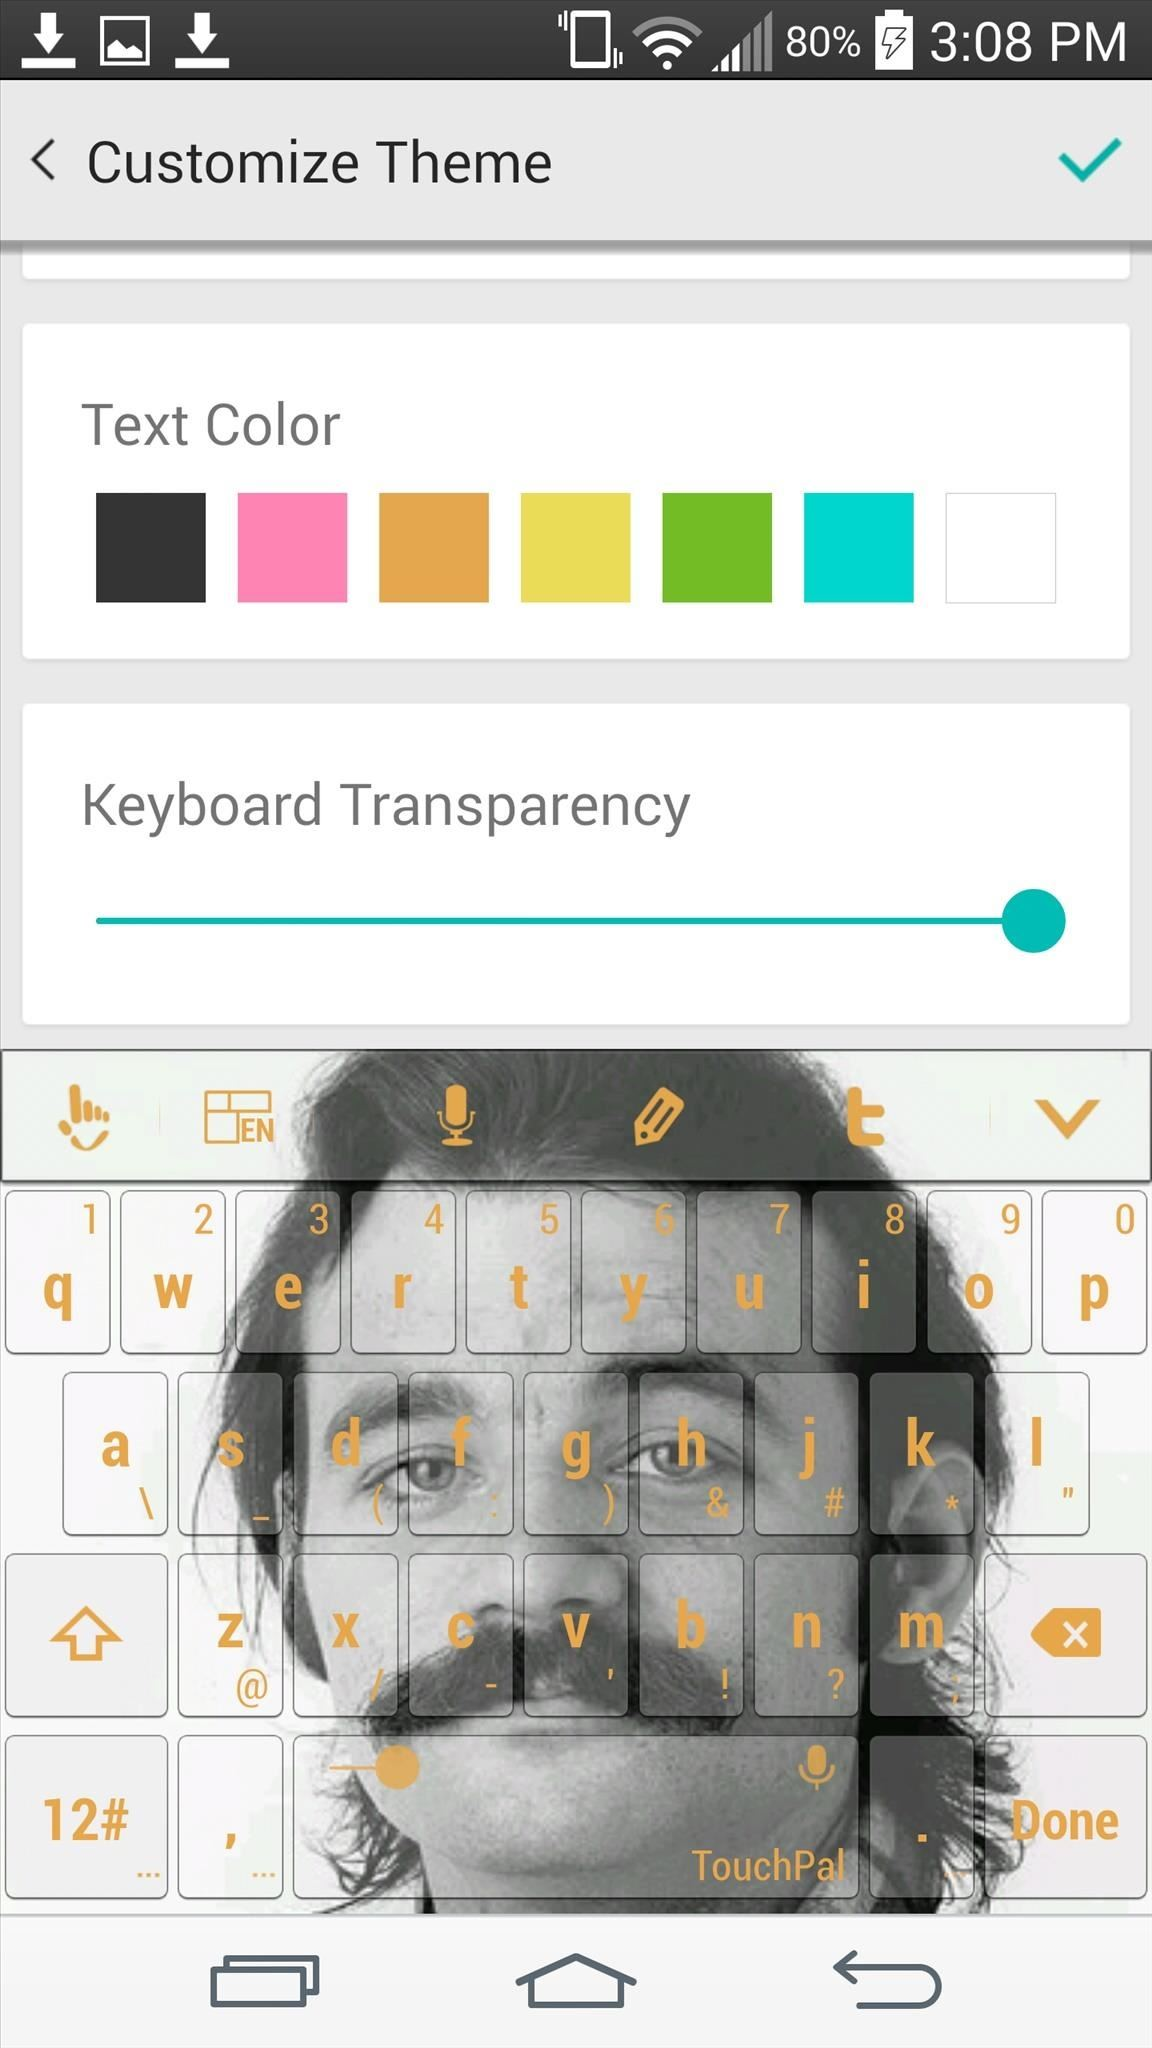 TouchPal's Update Makes It the Most Themable Android Keyboard to